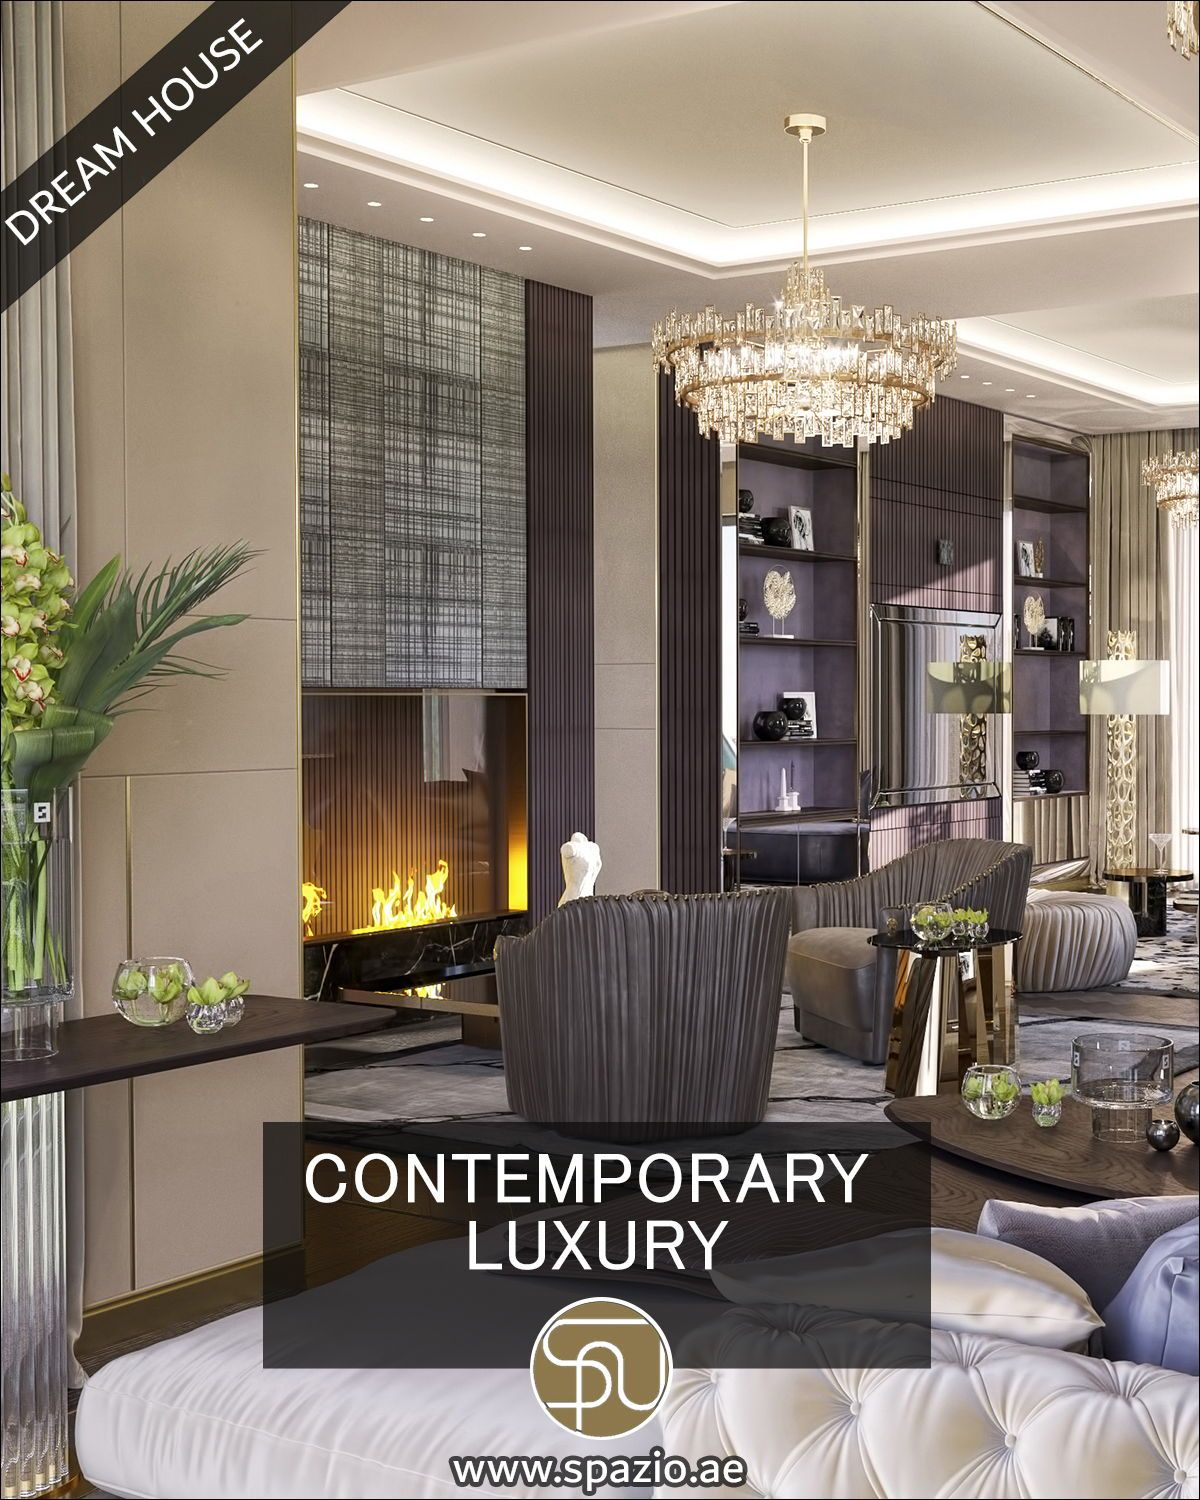 High End Homes Living Room Interior Design Video For Your Inspiration In 2020 Luxury House Interior Design Interior Design Videos Contemporary Interior Design